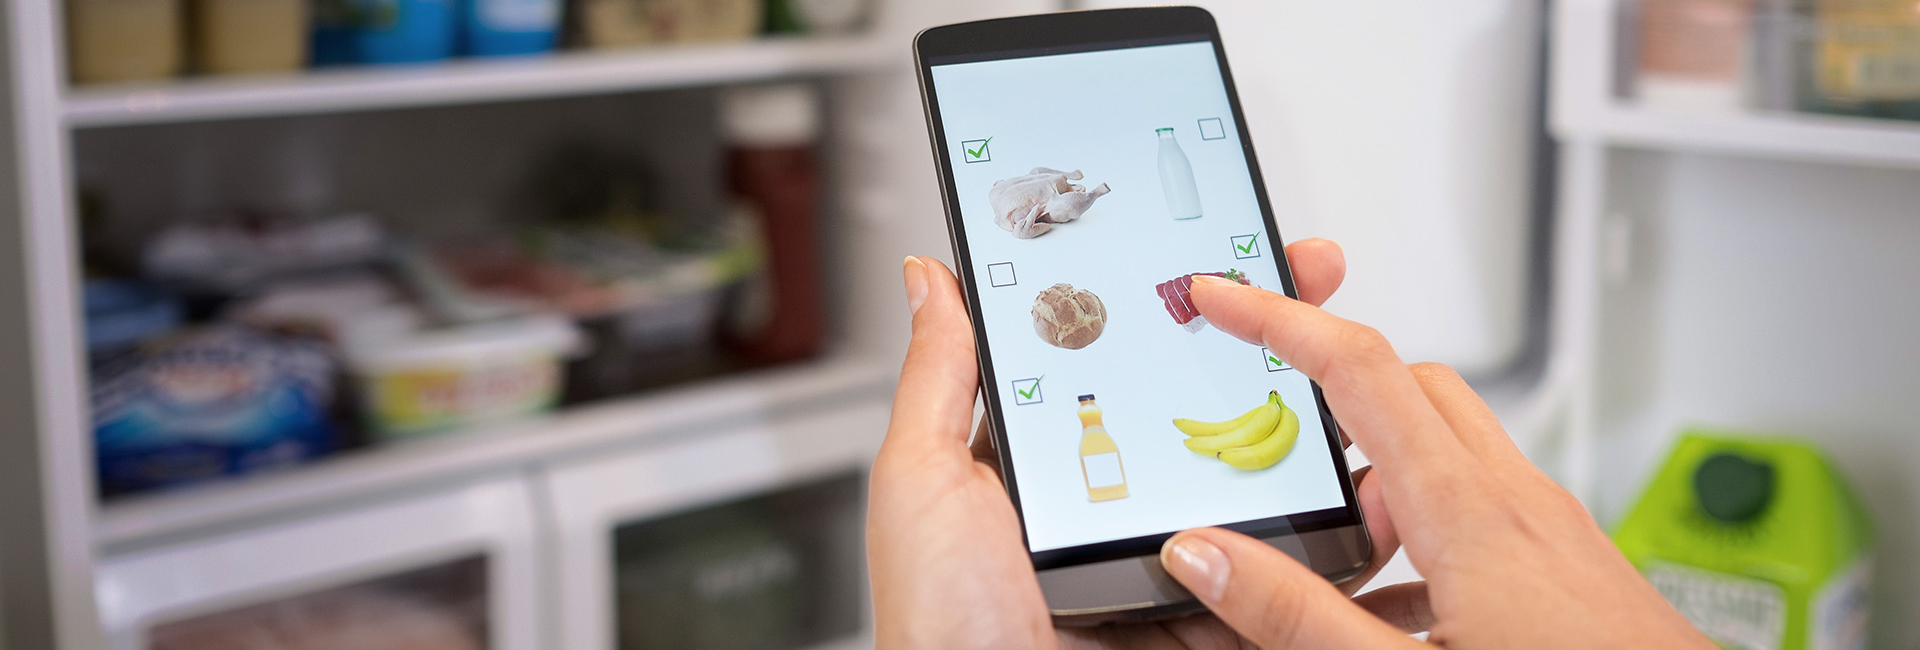 Smart Tech in the Kitchen